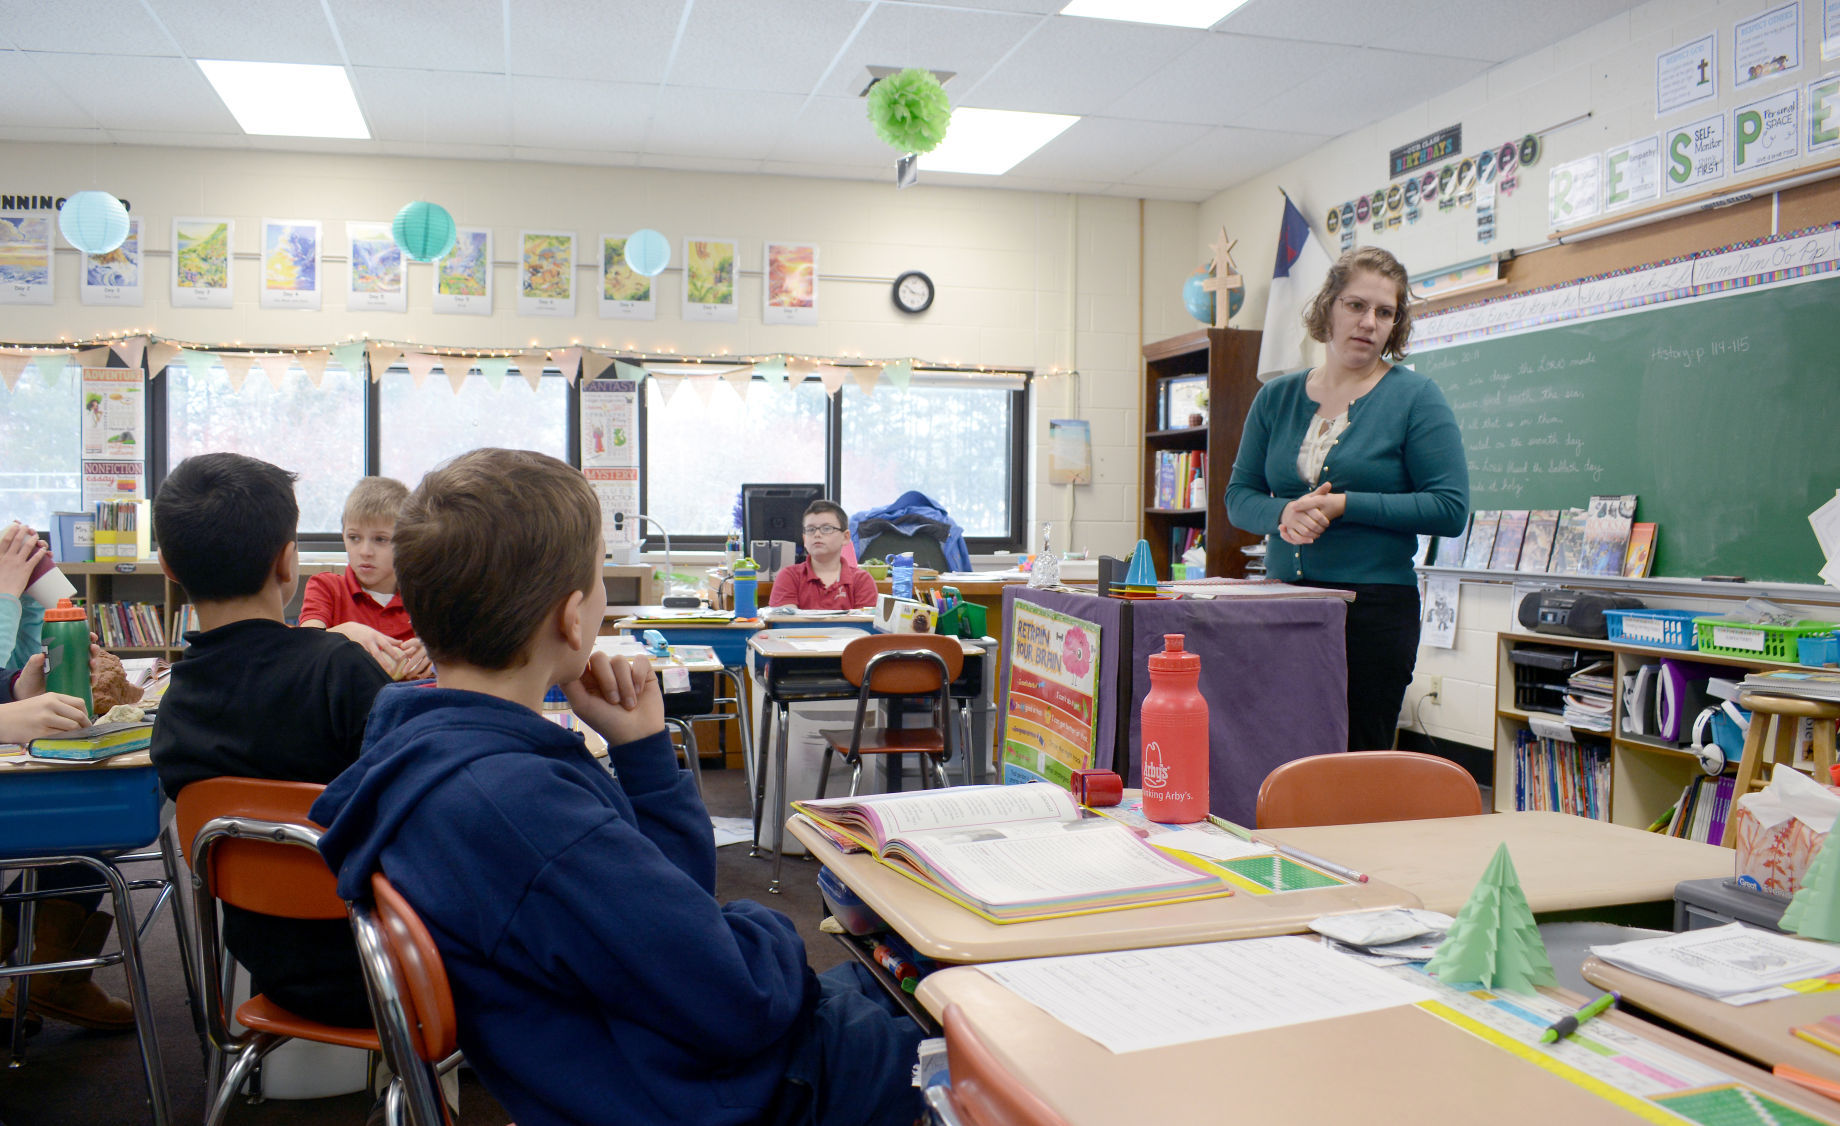 Christian School Administrator Cover Letter Baraboo Community Christian School Joins State Voucher Program